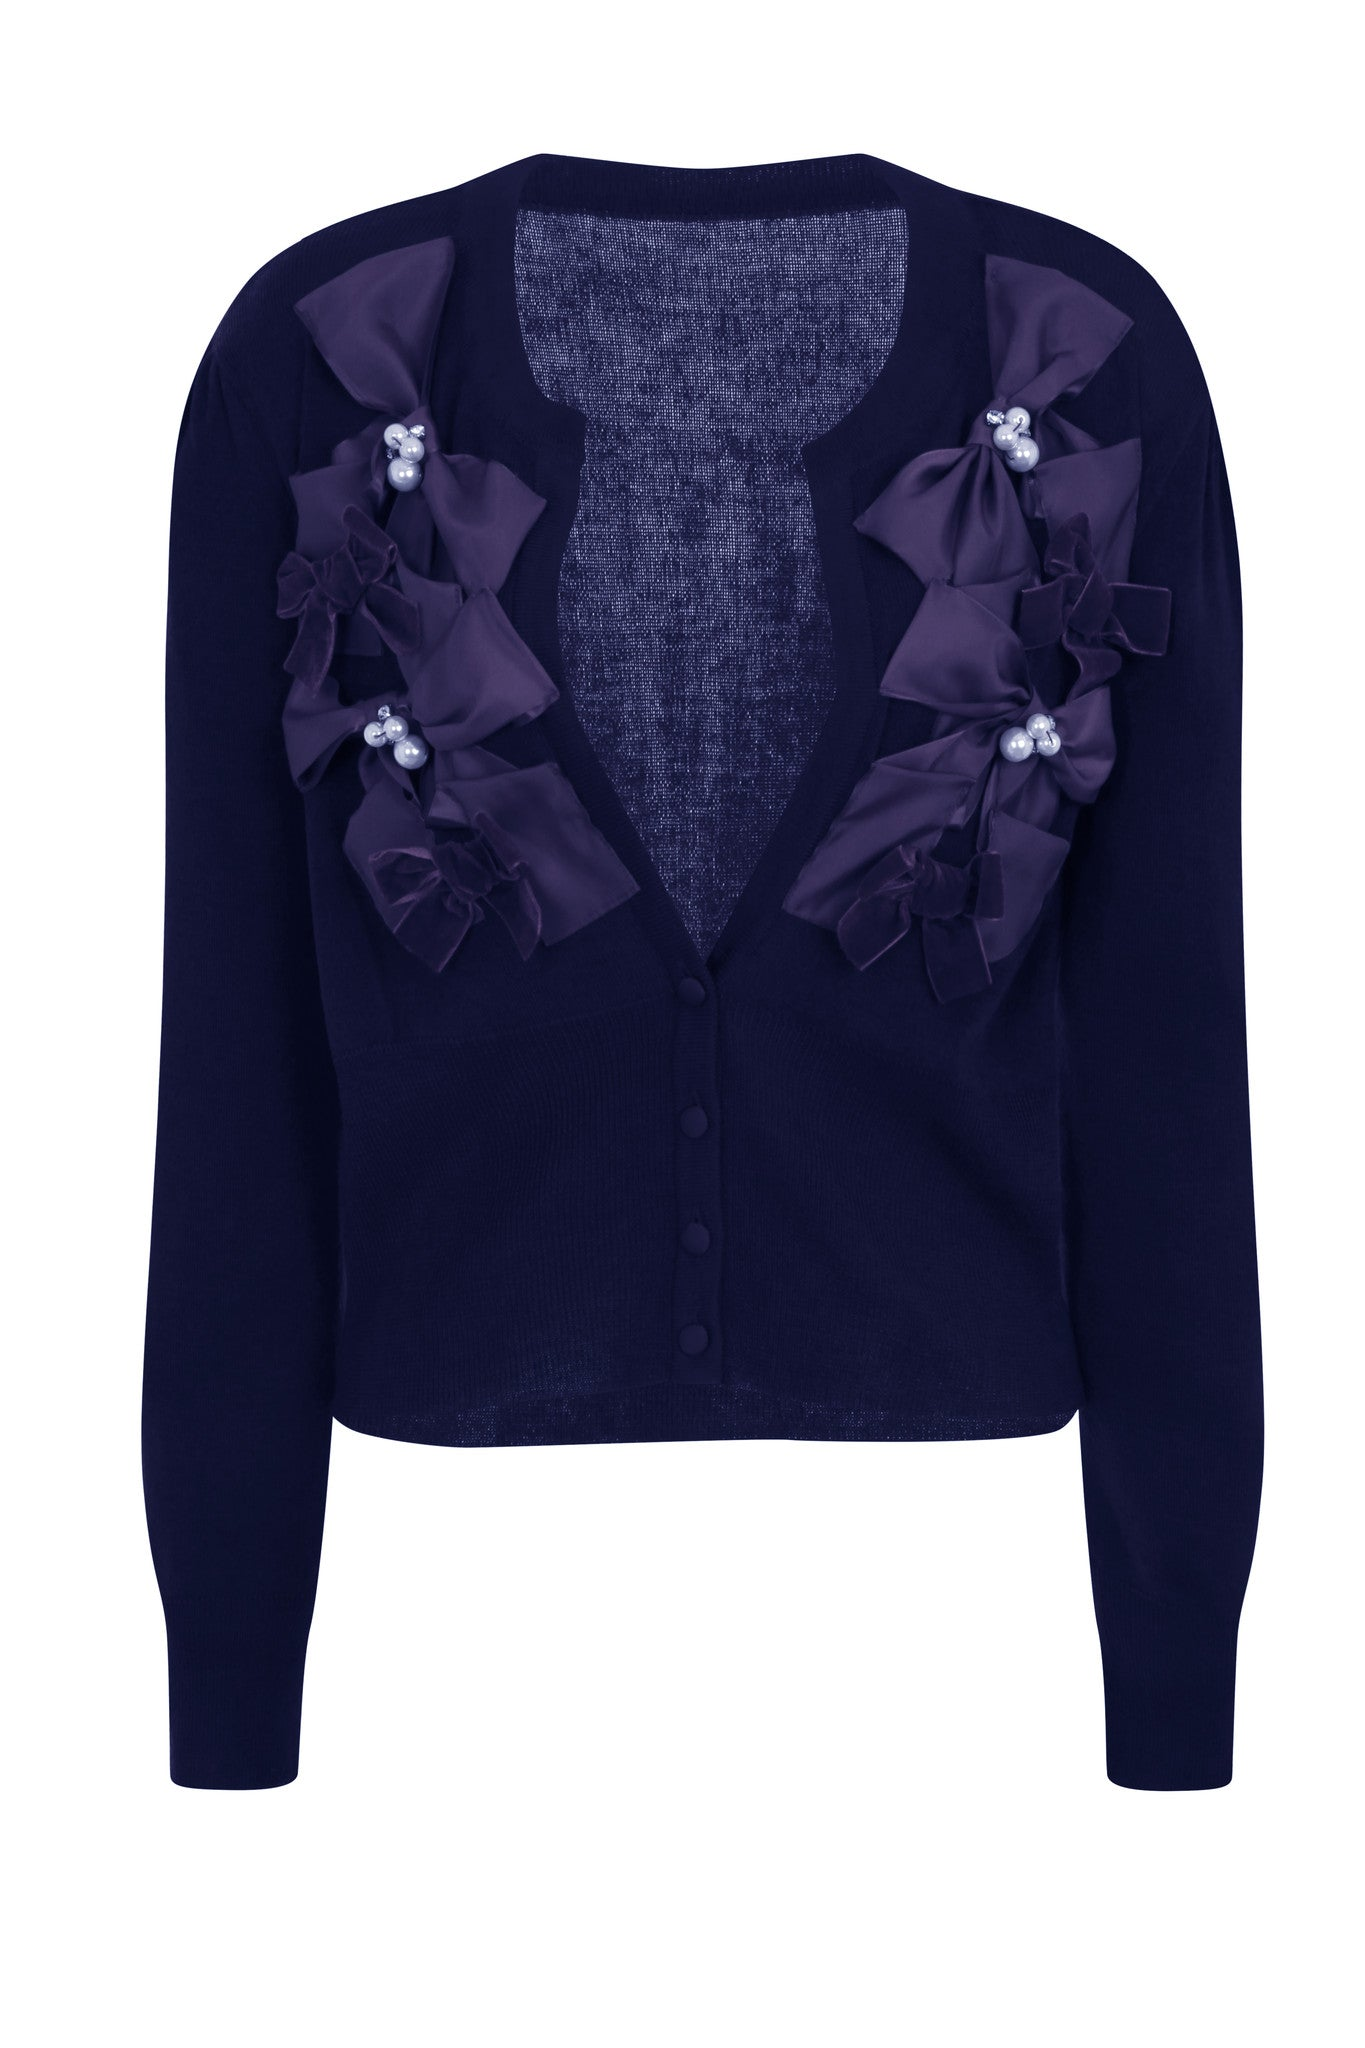 RIBBON BOW CARDIGAN - NAVY - Darccy & Soma London